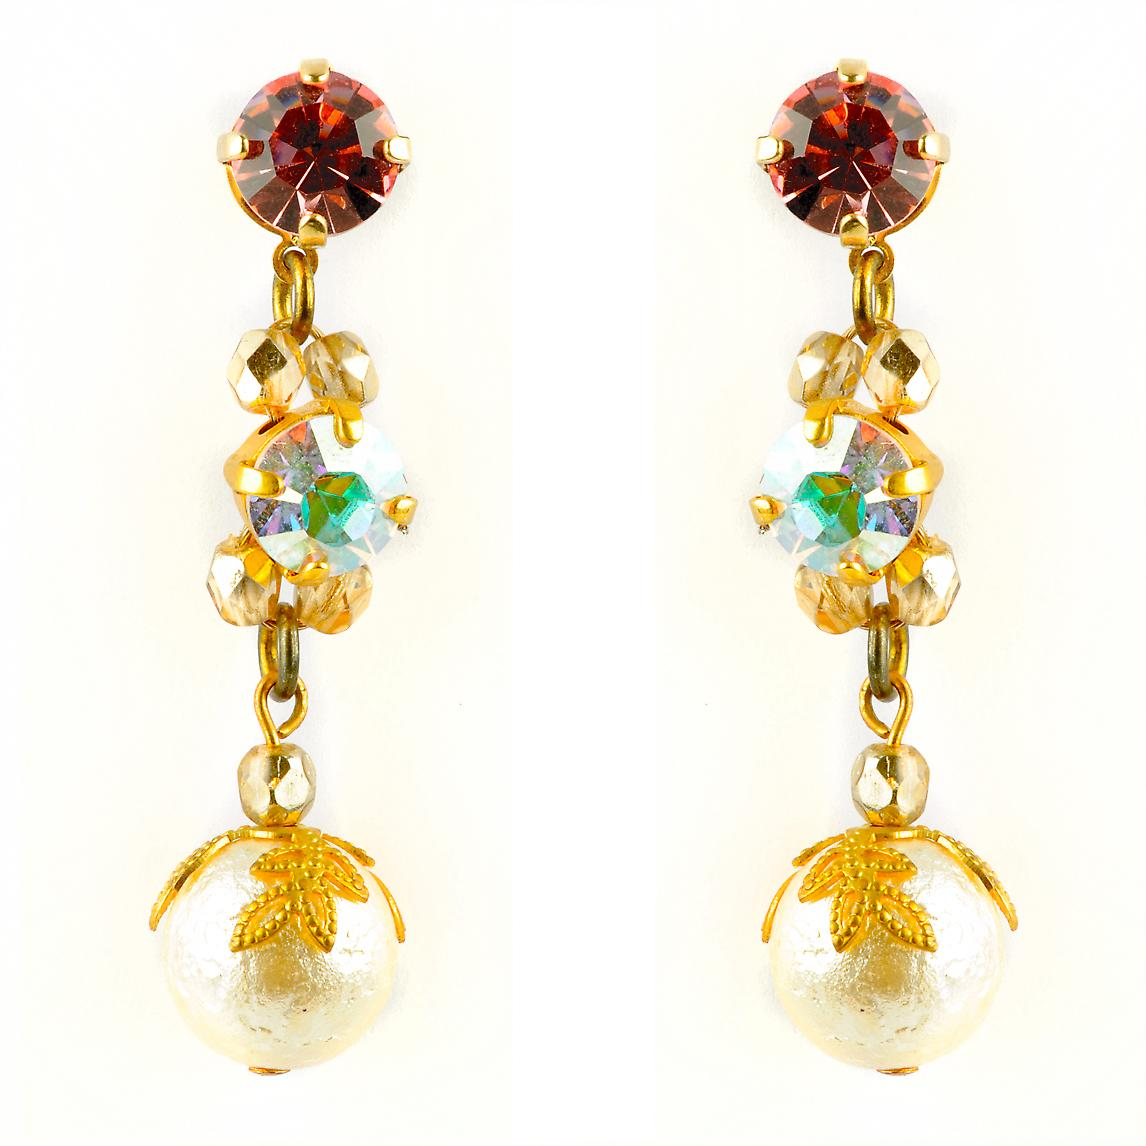 Waooh - Fashion Jewellery - WJ0701 - On Earrings with Swarovski Red and Gold - Frame Colour Gold - Gold color beads